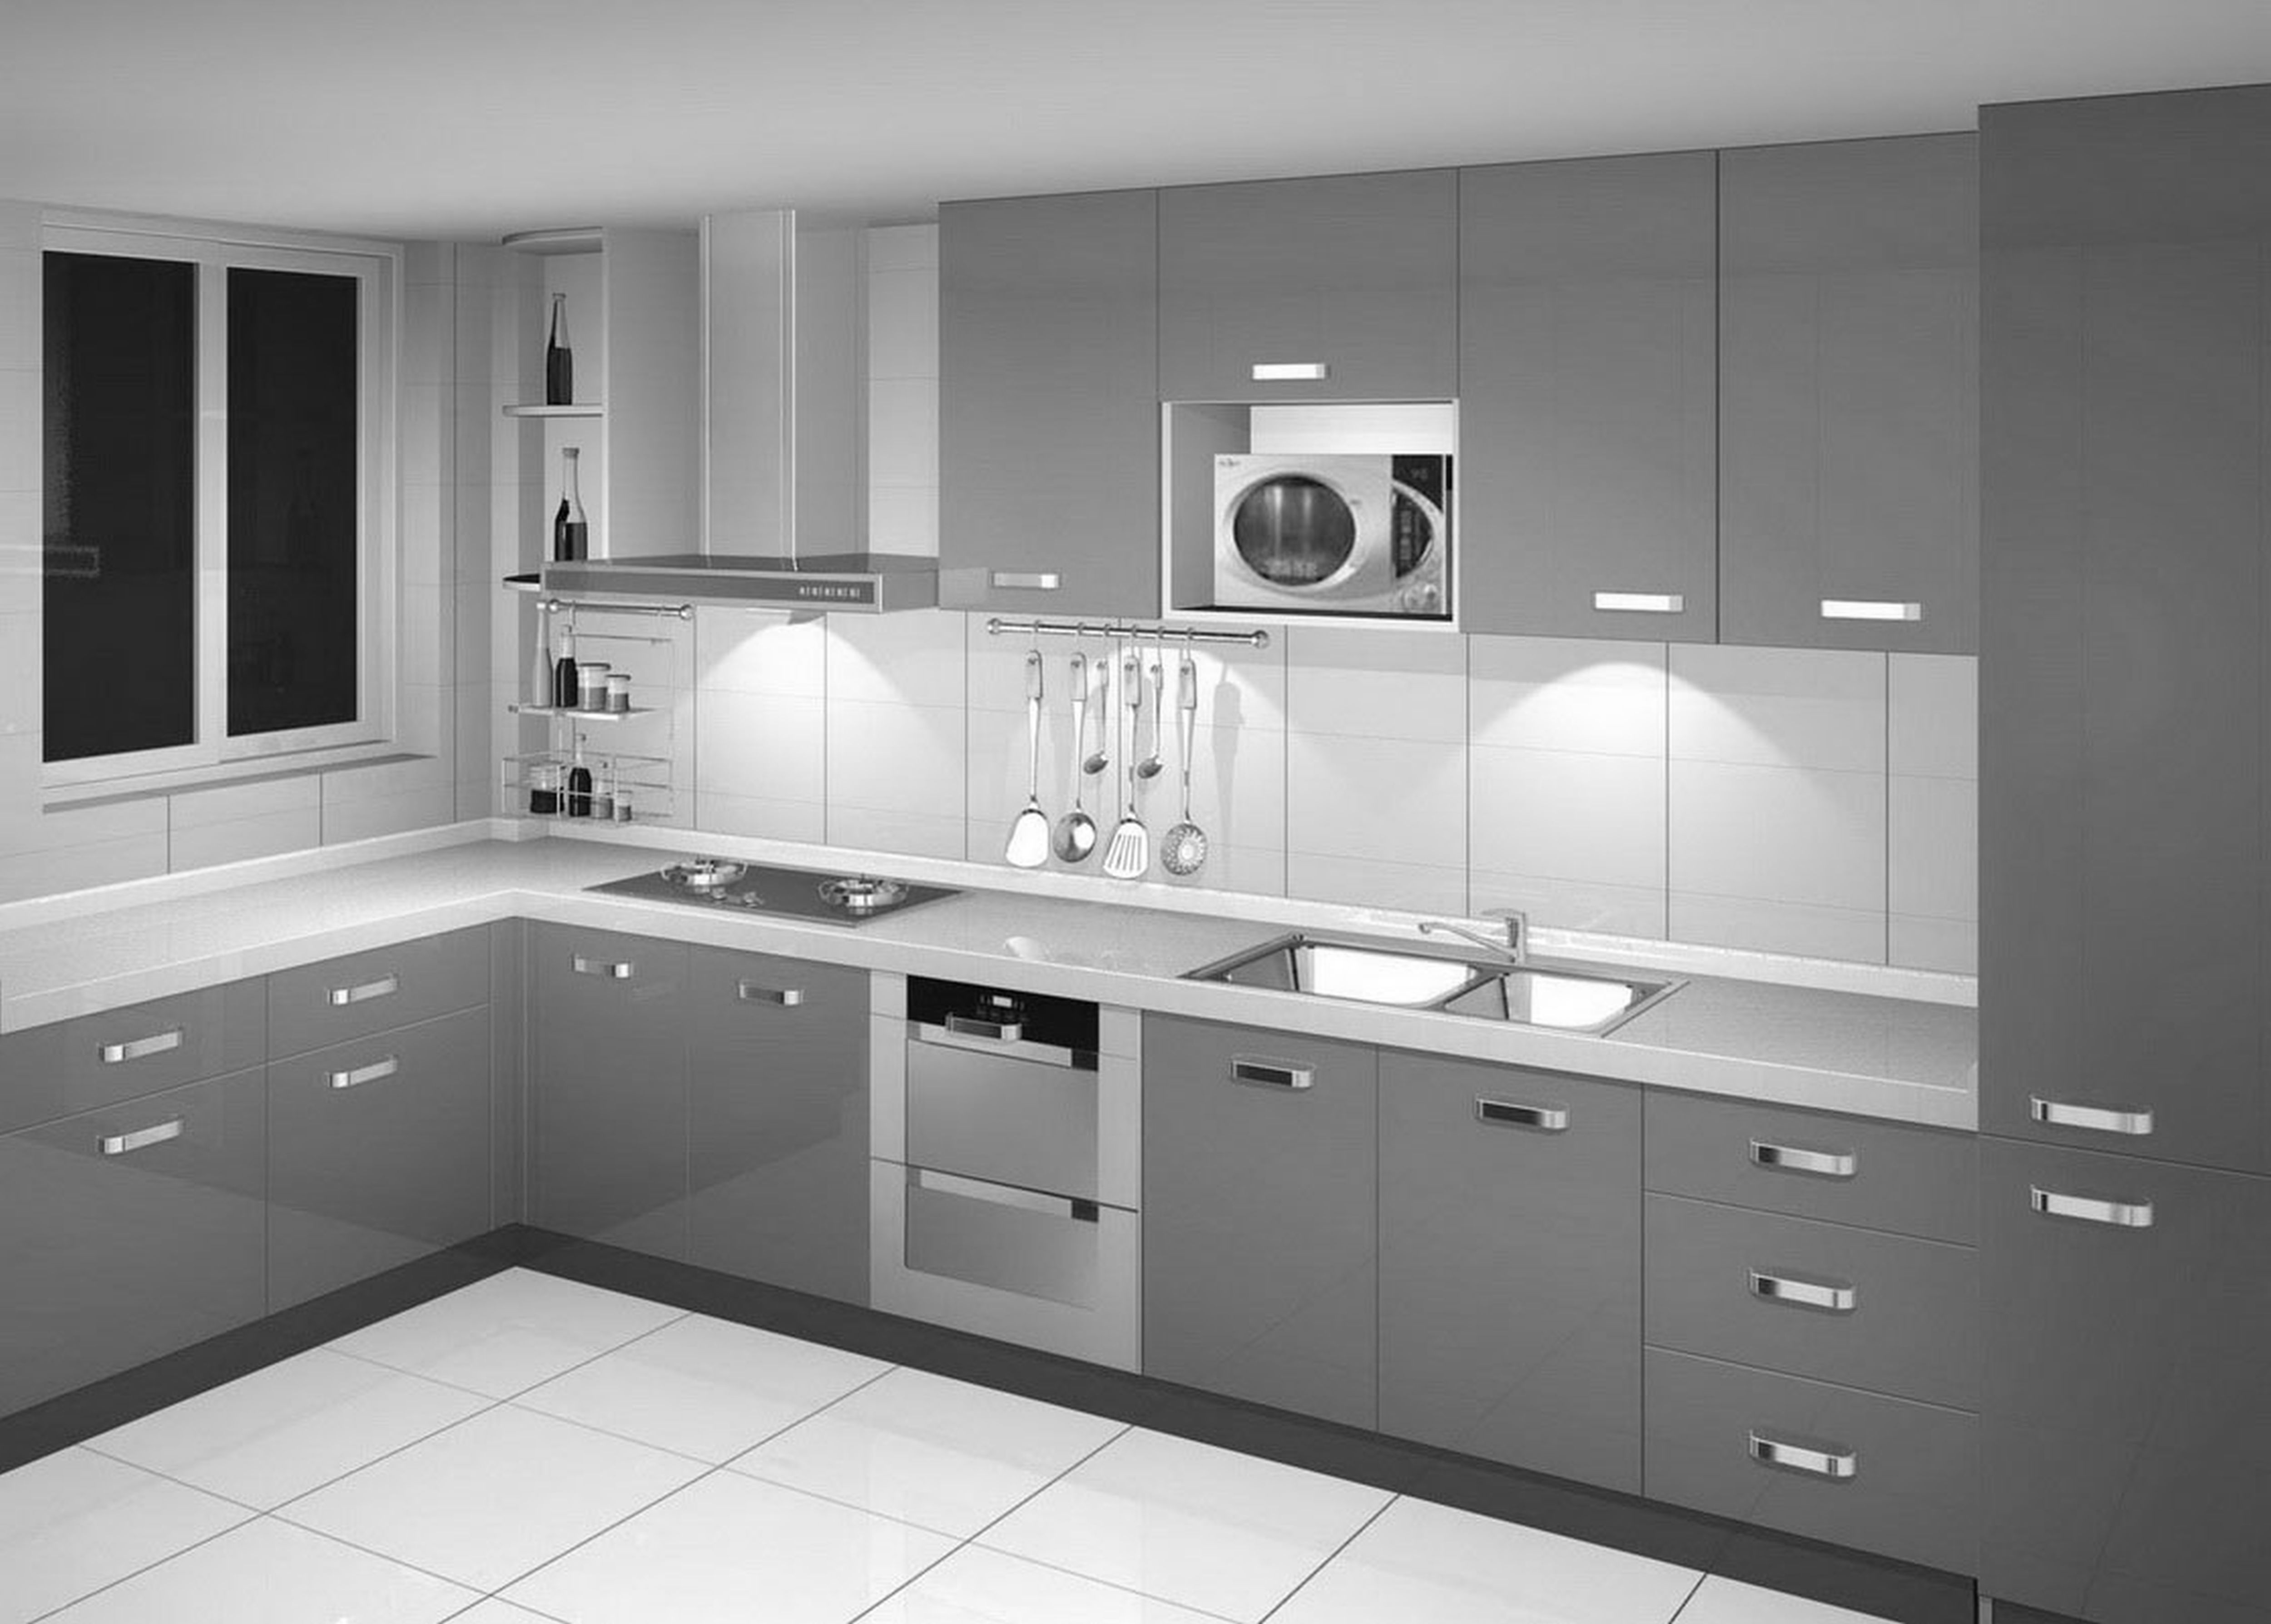 5 Reasons Why Modular Kitchen Designs Are The Latest Trend